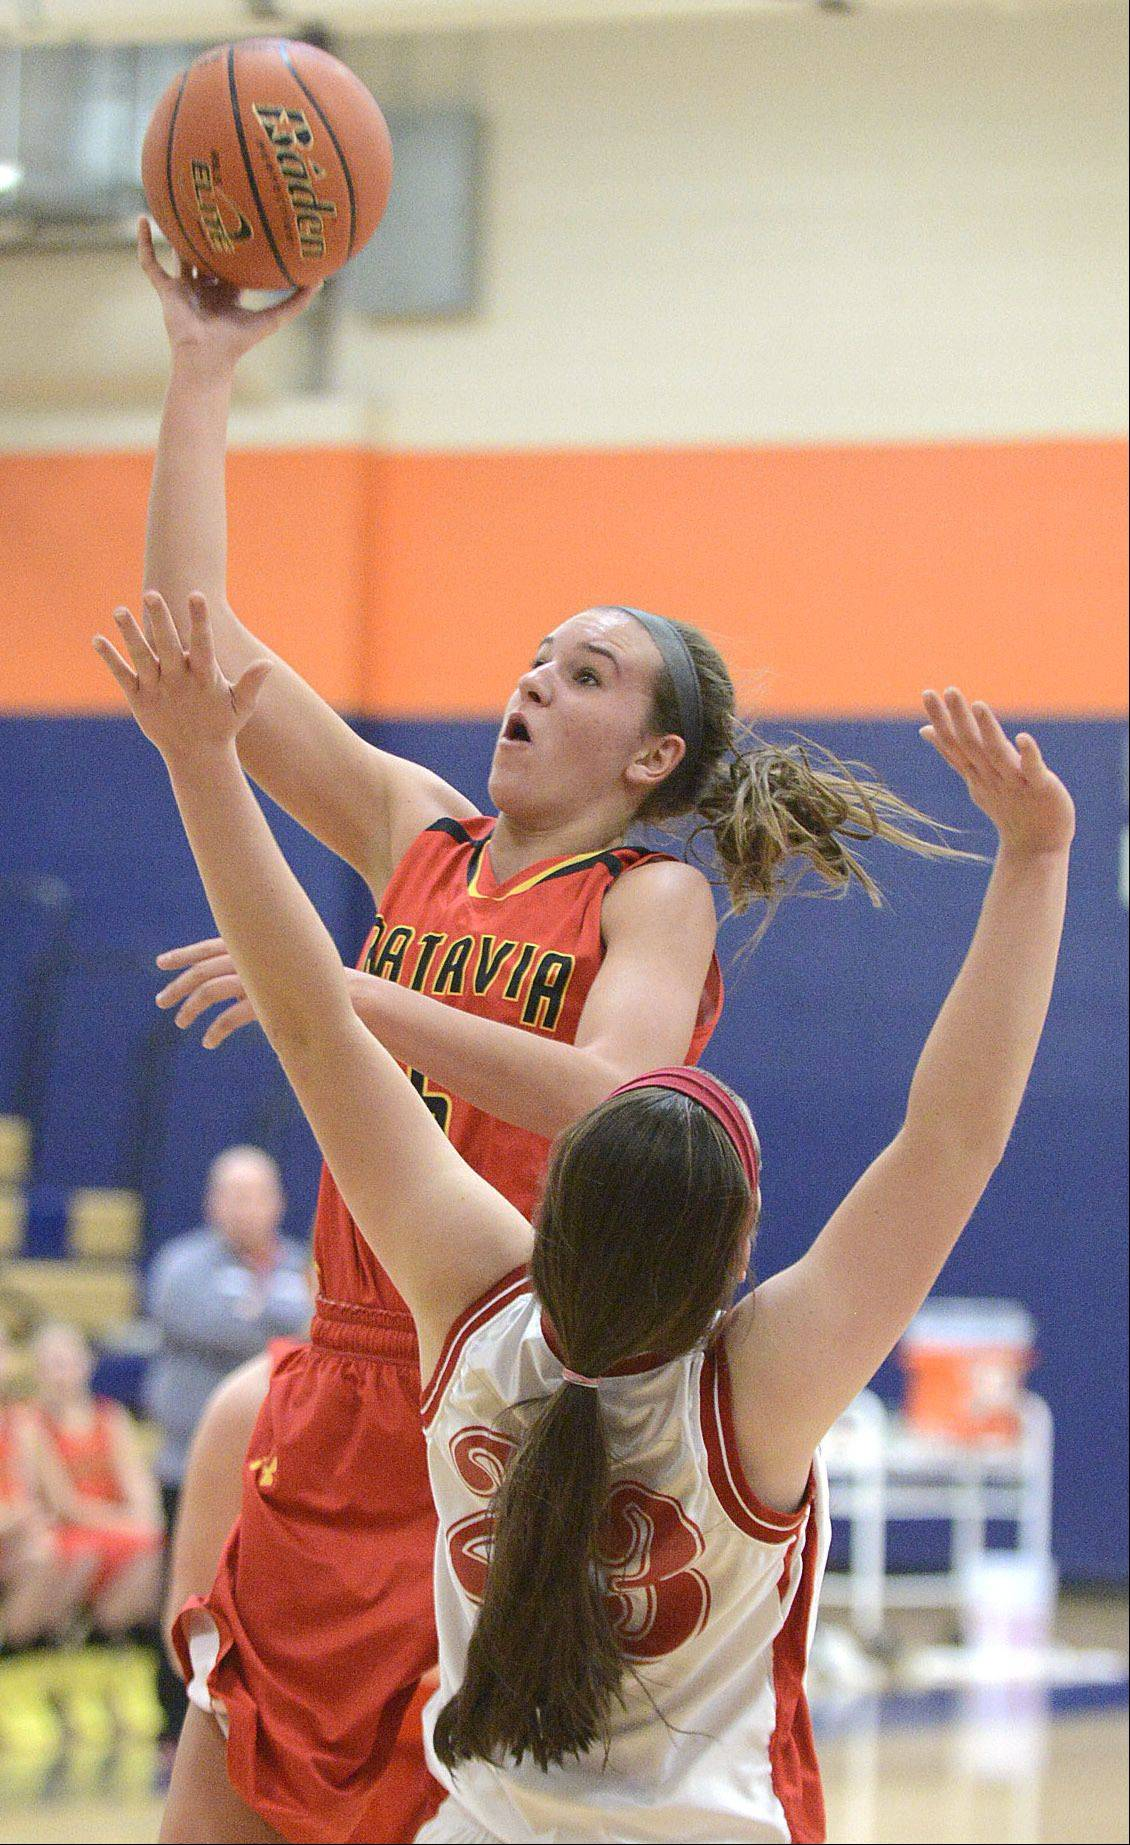 Batavia's Liza Fruendt shoots over a block by Naperville Central's Lisa Tassi in the second quarter on Saturday.